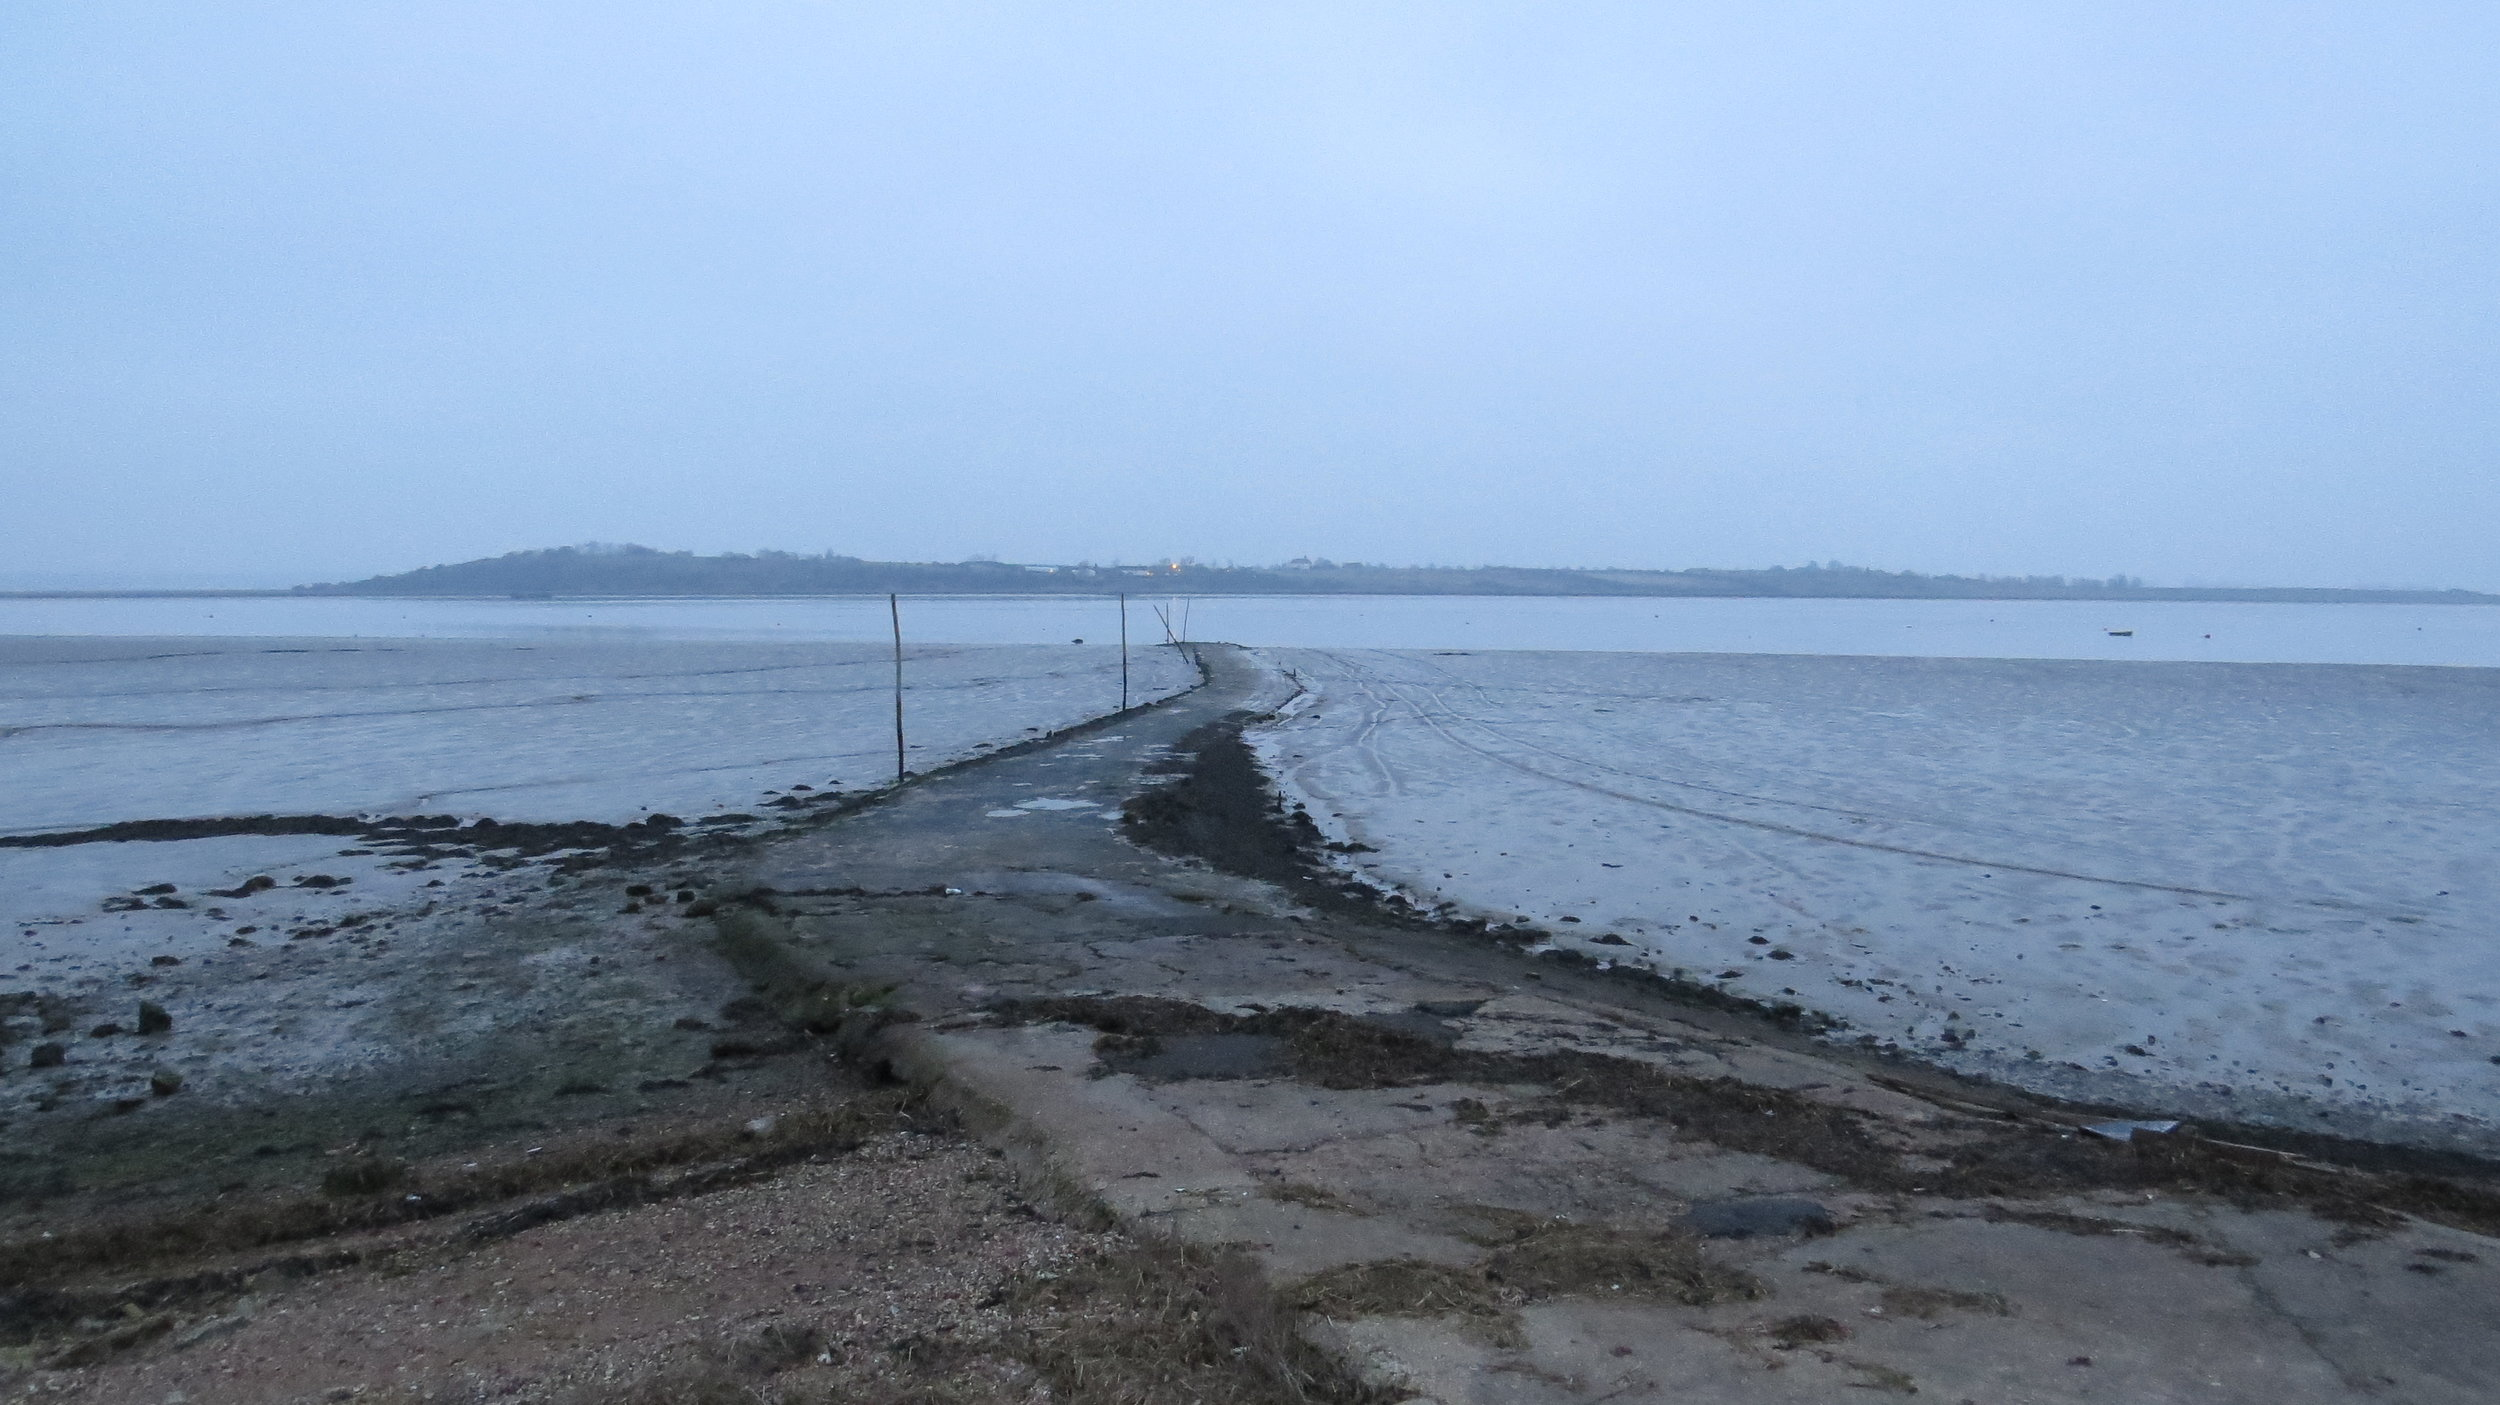 Looking back across to Harty